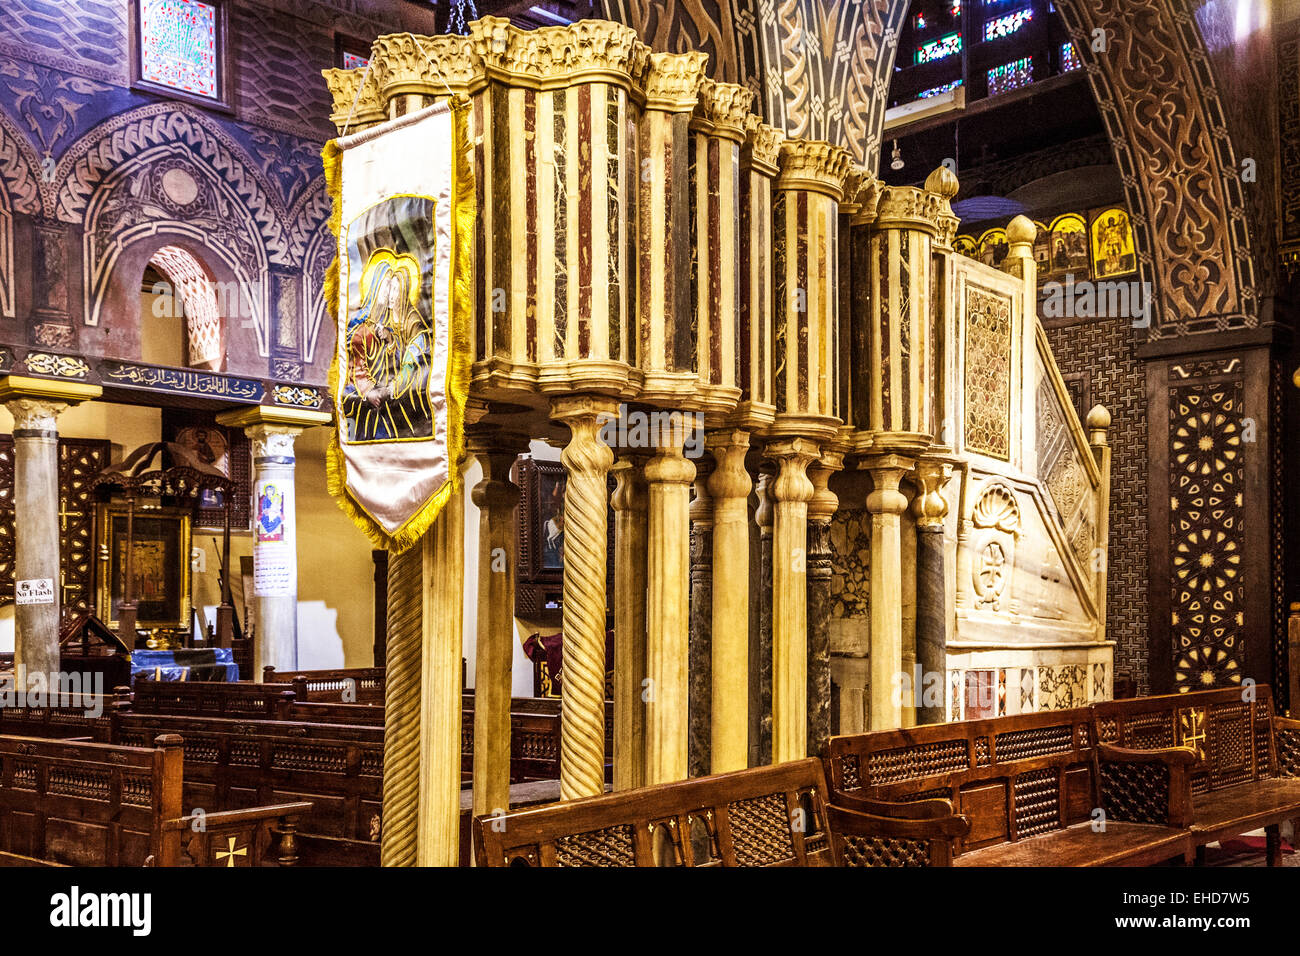 Interior of St. Sergius and Bacchus Church in the Coptic quarter of Old Cairo. - Stock Image